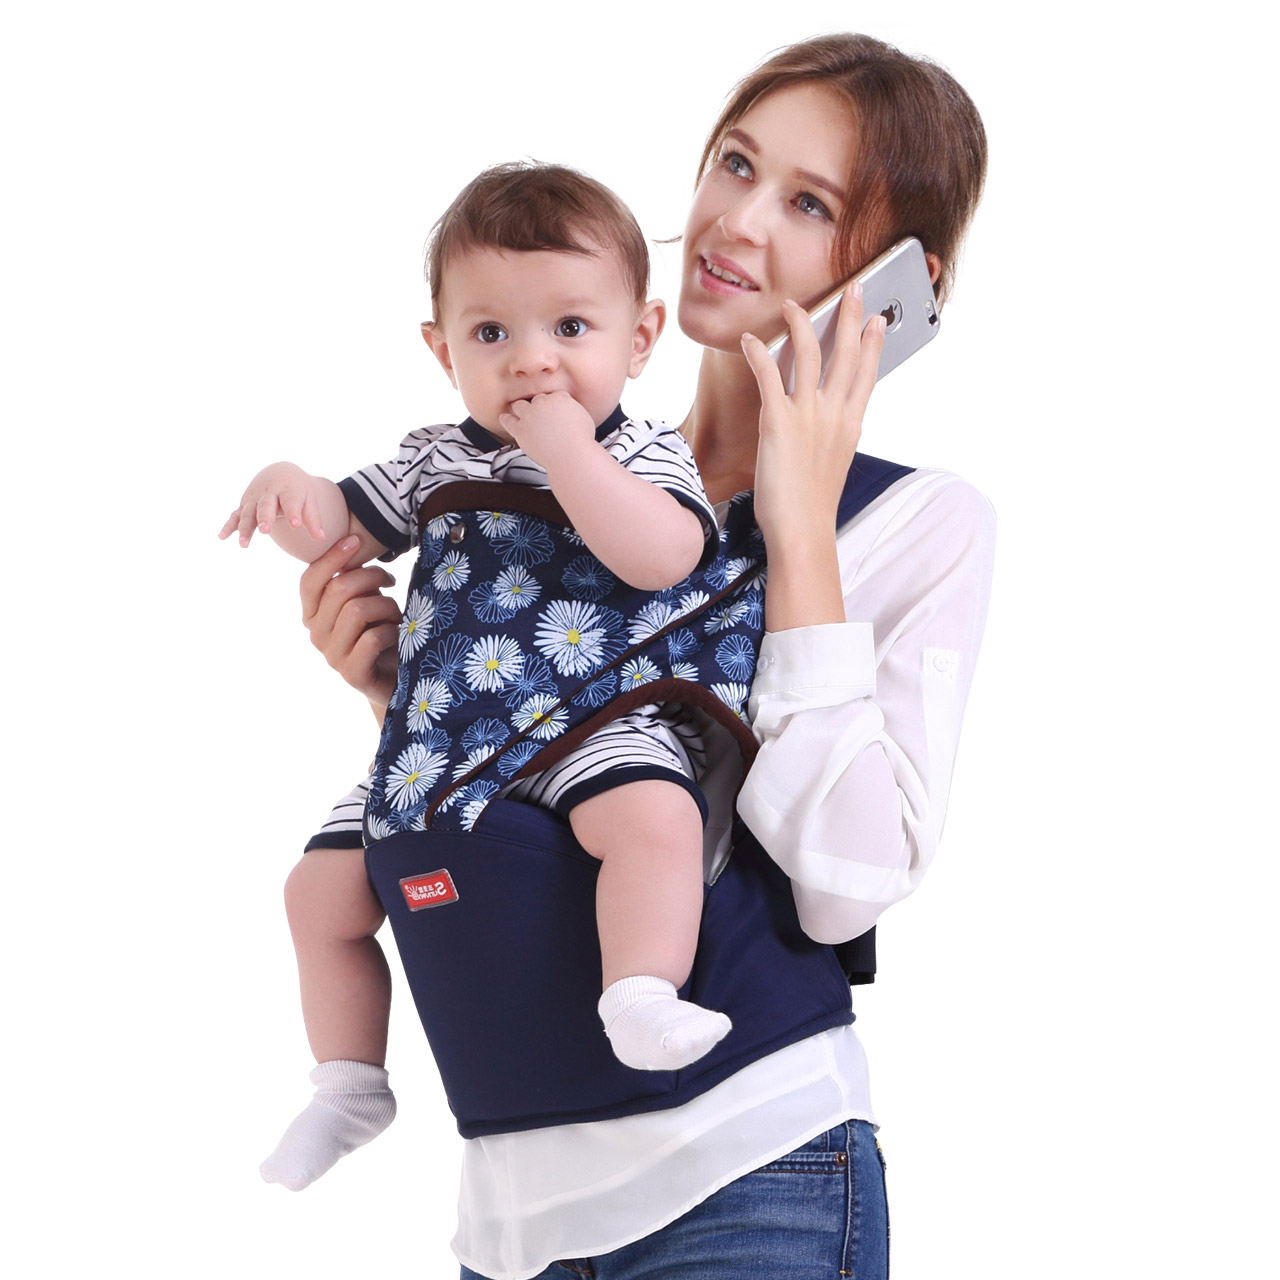 Hot Sell Fashion Design Baby Hipseat Soft Baby Backpack Breathable Belt Infant Carrier Double Shoulder Strap Baby Waist Stool 2016 hot selling baby carrier waist stool baby sling holding board baby belt backpack hipseat belt kids infant safety hip seat